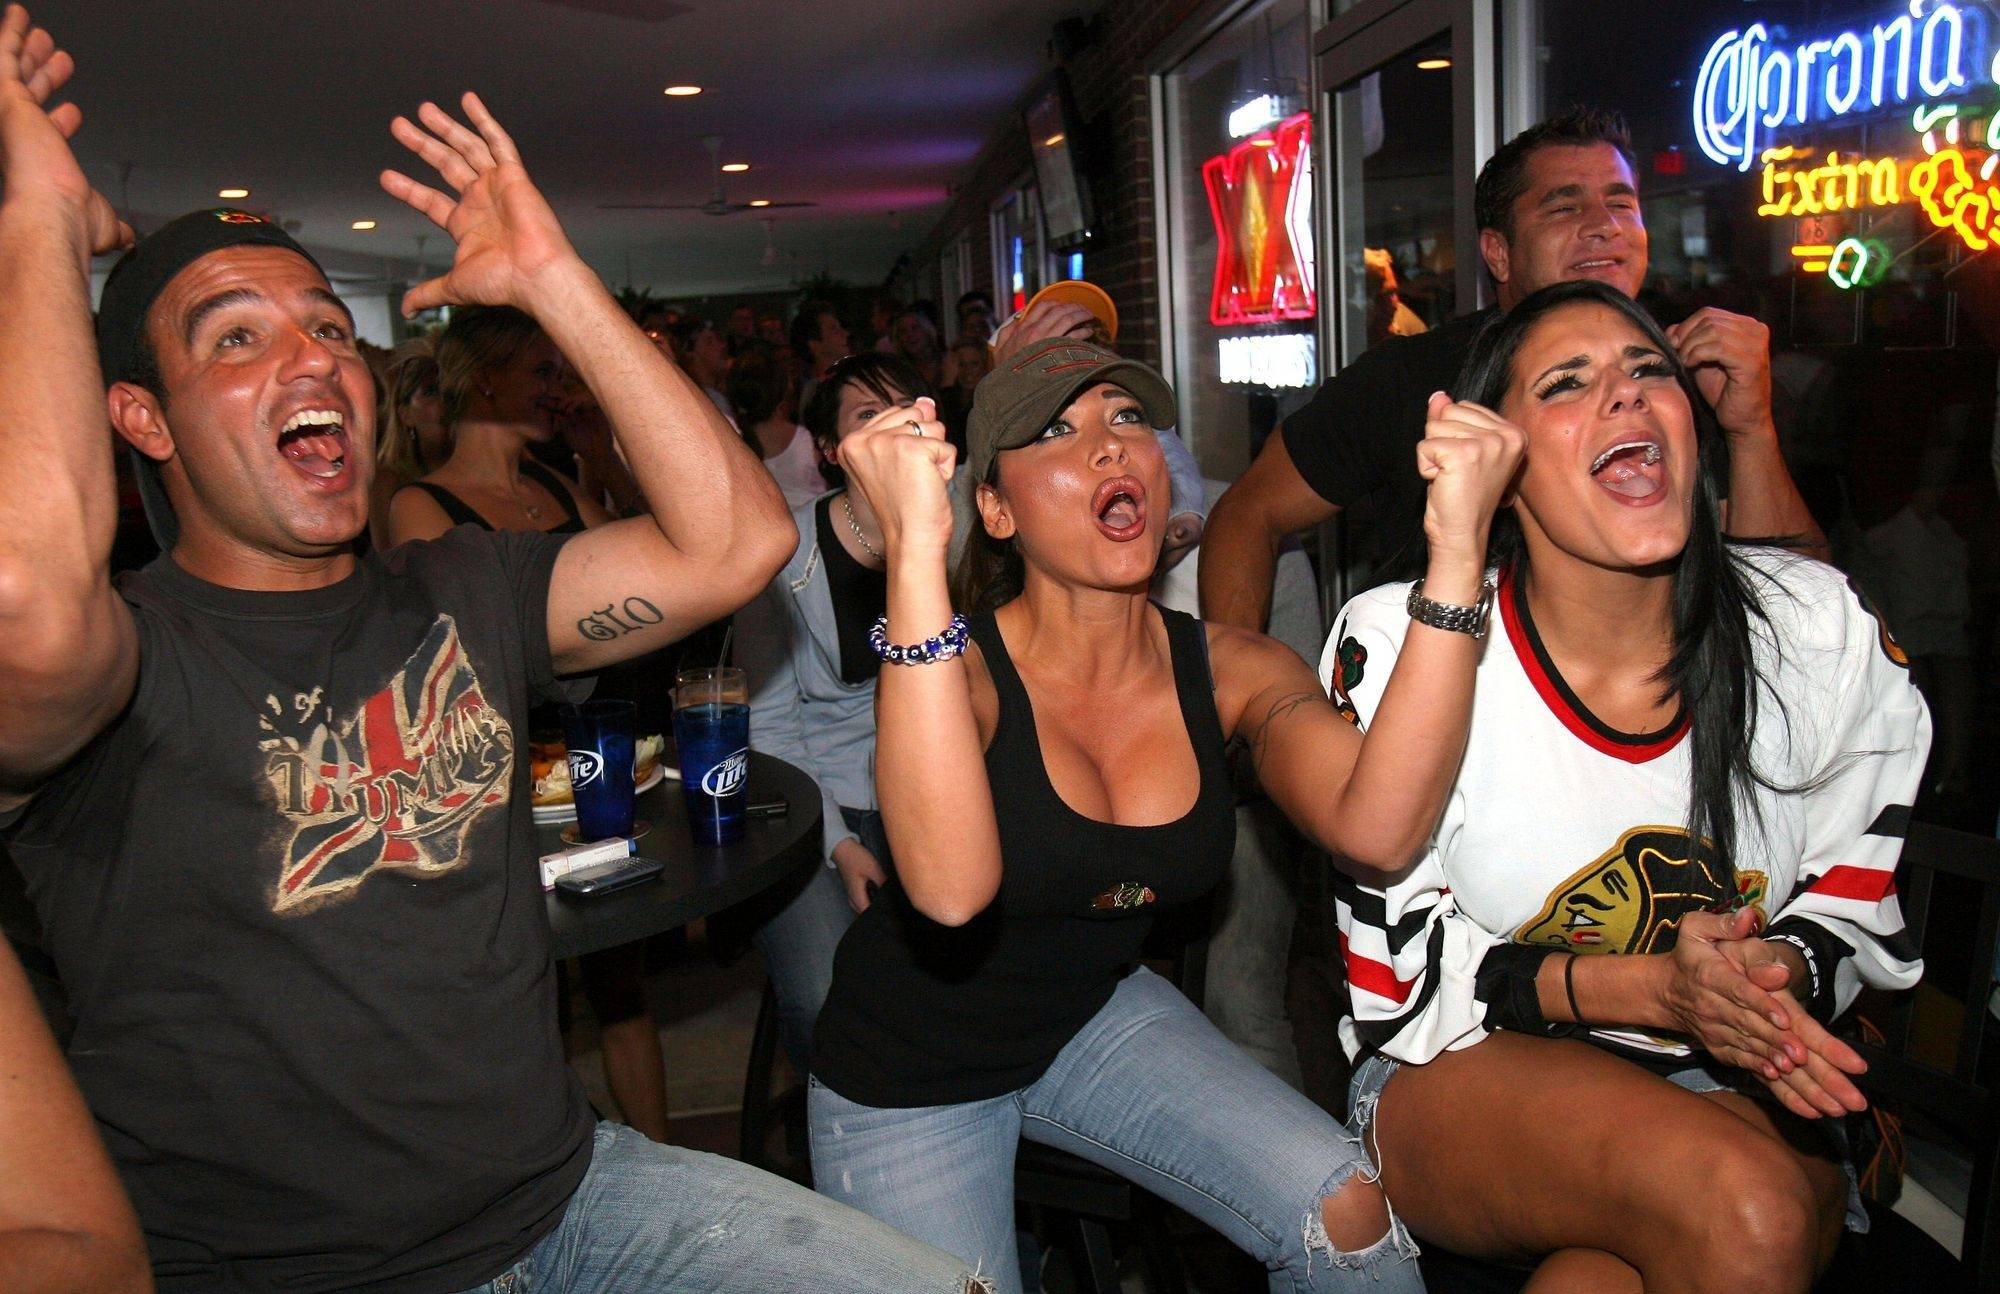 Vince DeLuca of Vernon Hills , Penolope Magouliotis of Vernon Hills and Cali Parisi of Libertyville cheer at Tommy's Pizza and Sports Bar in Libertyville Wednesday night.